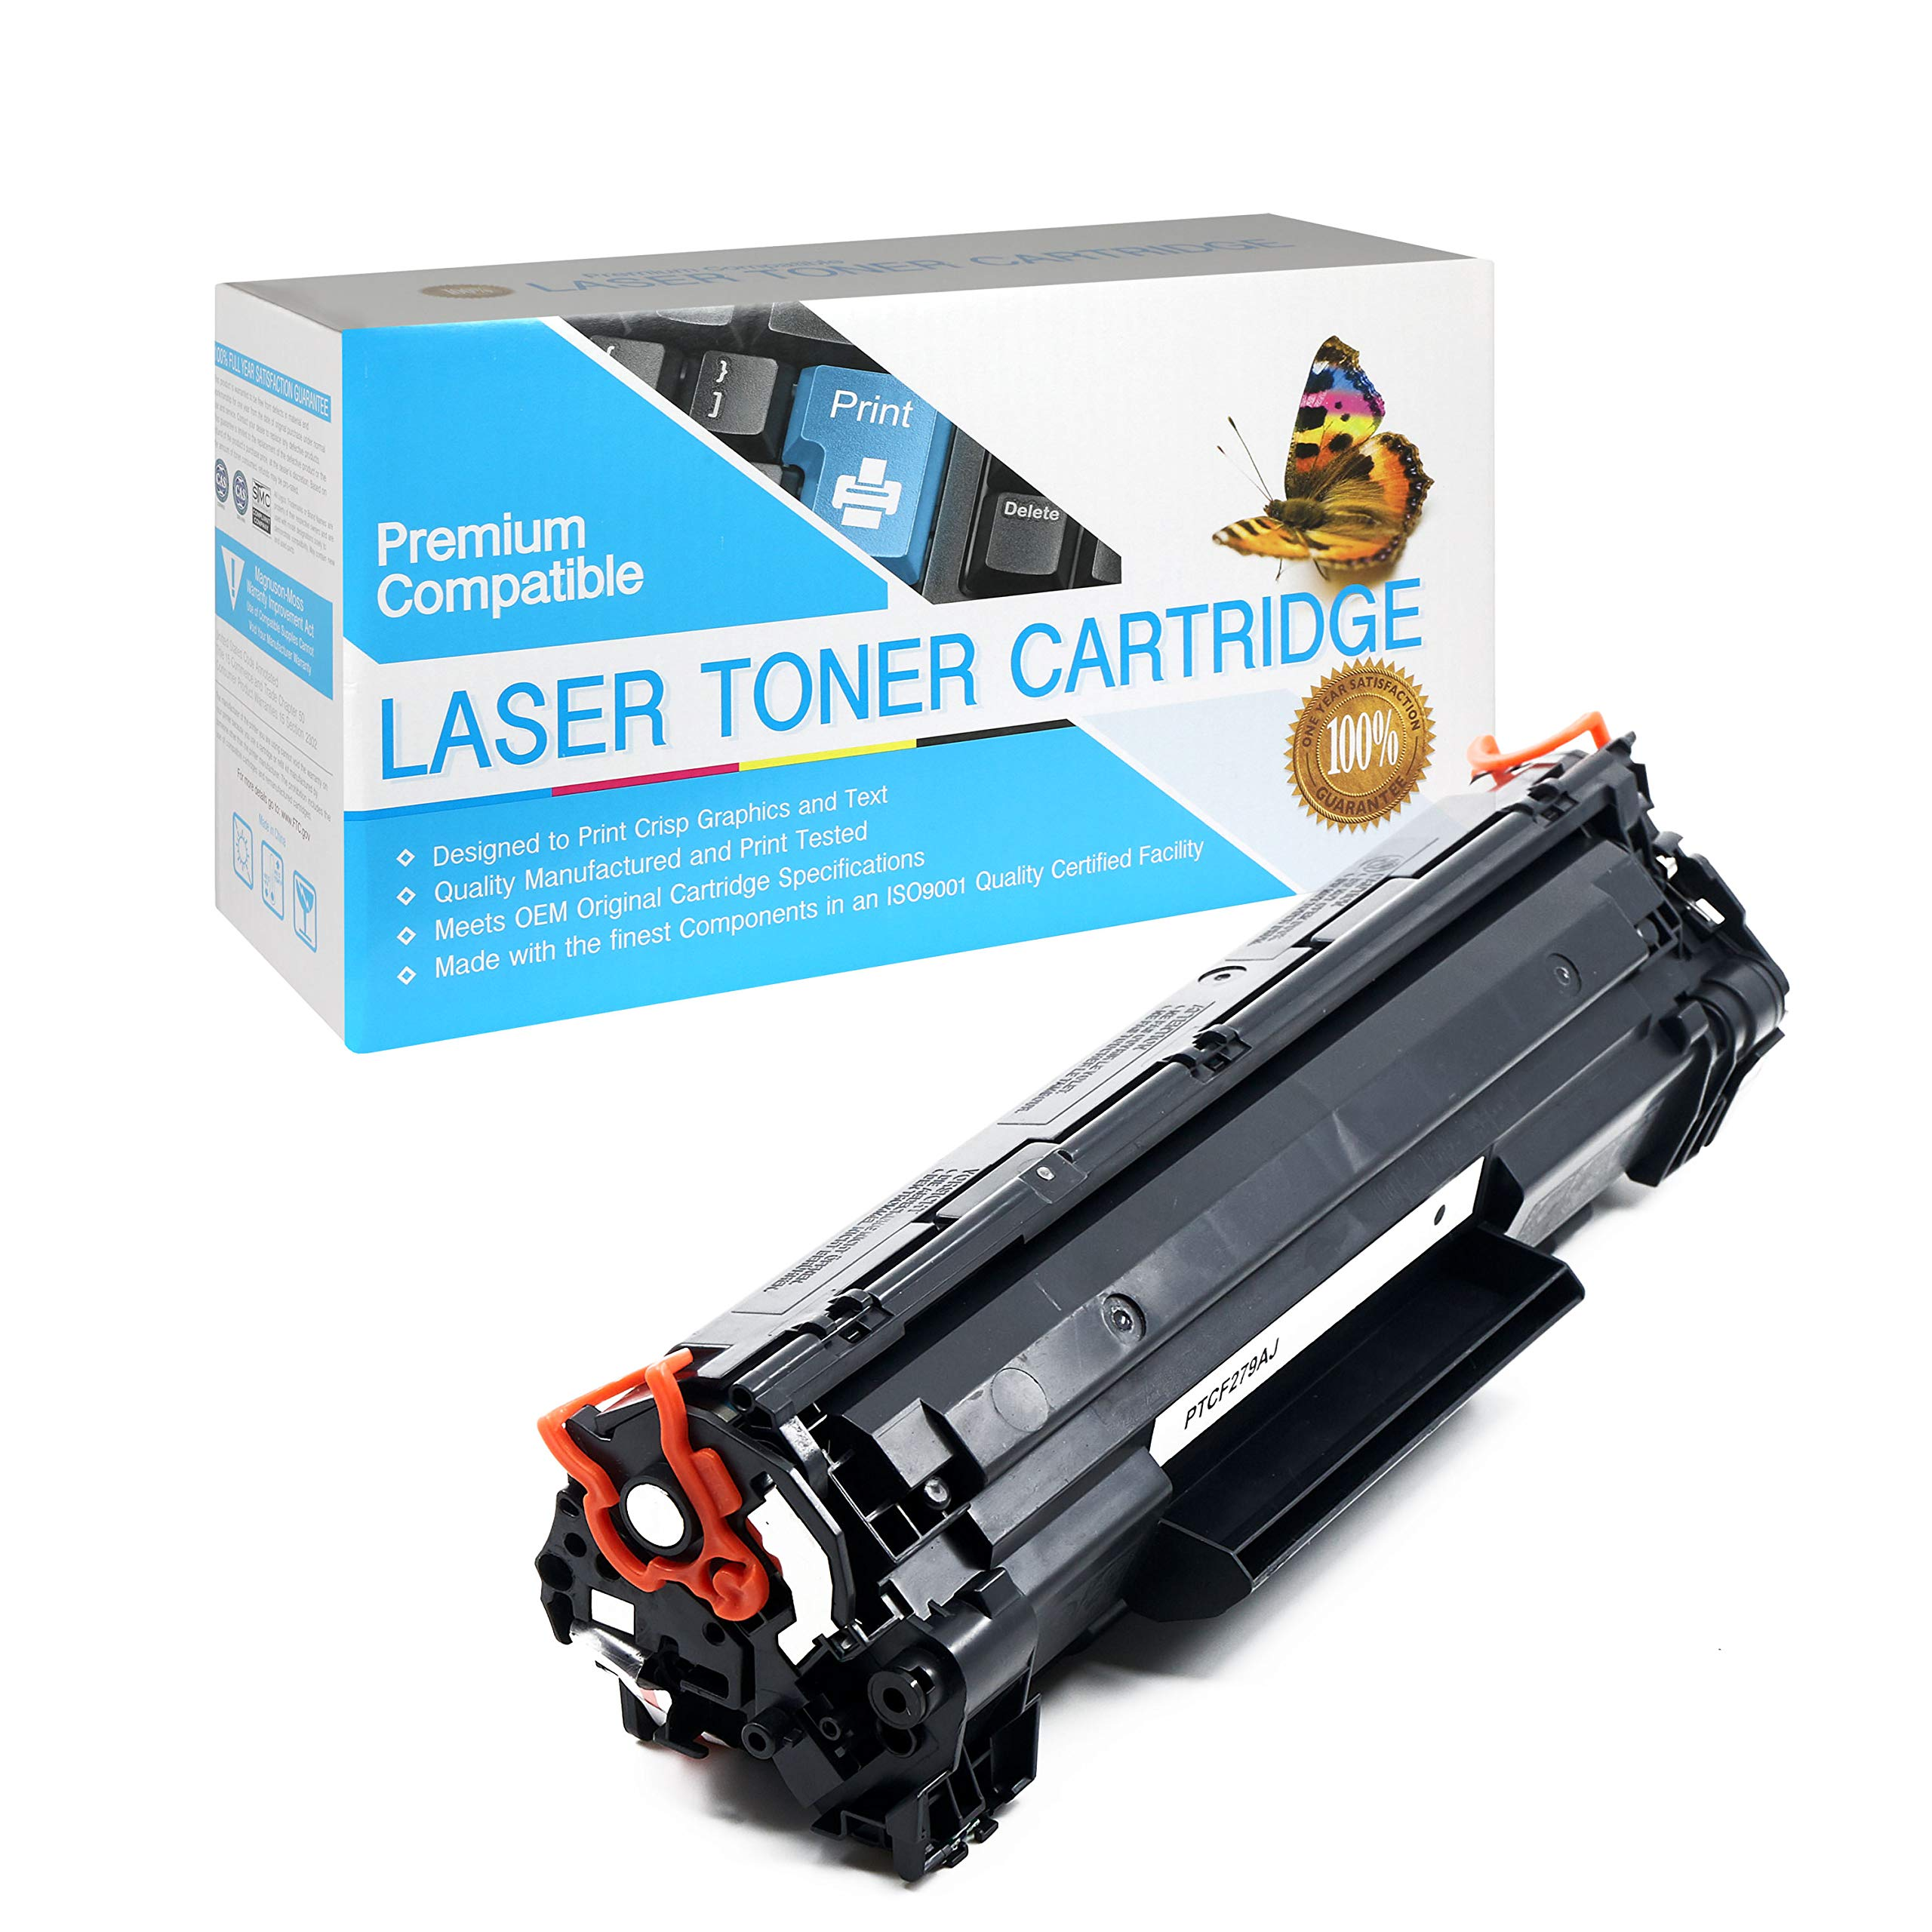 CF279A Black,1 Pack SuppliesOutlet Compatible Toner Cartridge Replacement for HP 79A